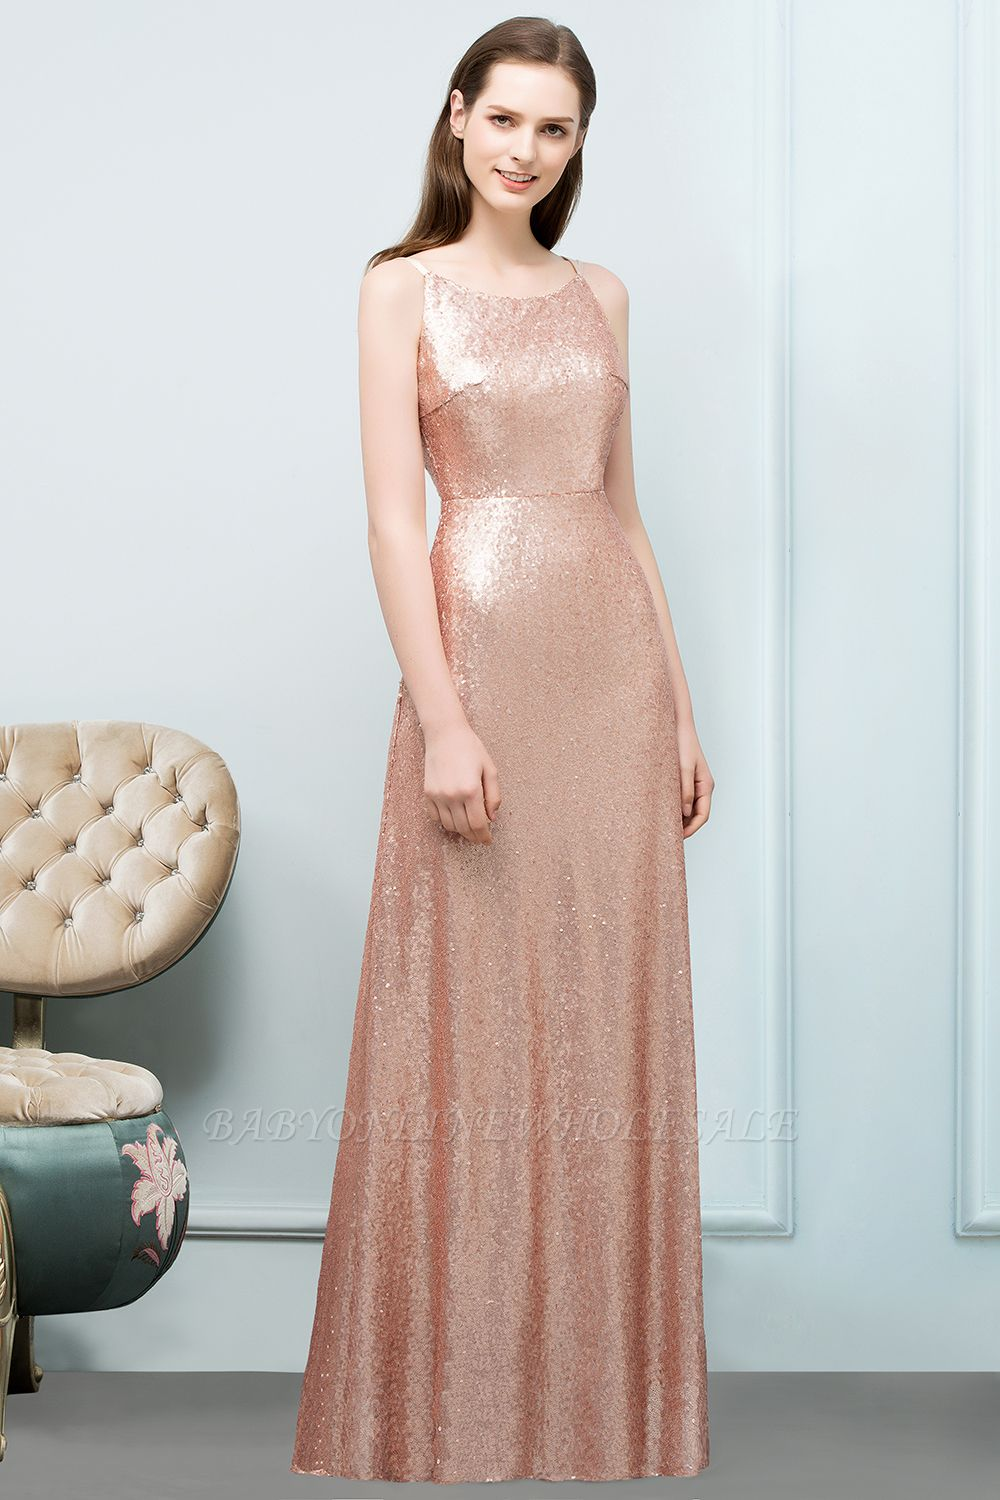 https://www.babyonlinewholesale.com/journee-a-line-one-shoulder-sleeveless-floor-length-sequins-prom-dresses-g625?cate_2=30